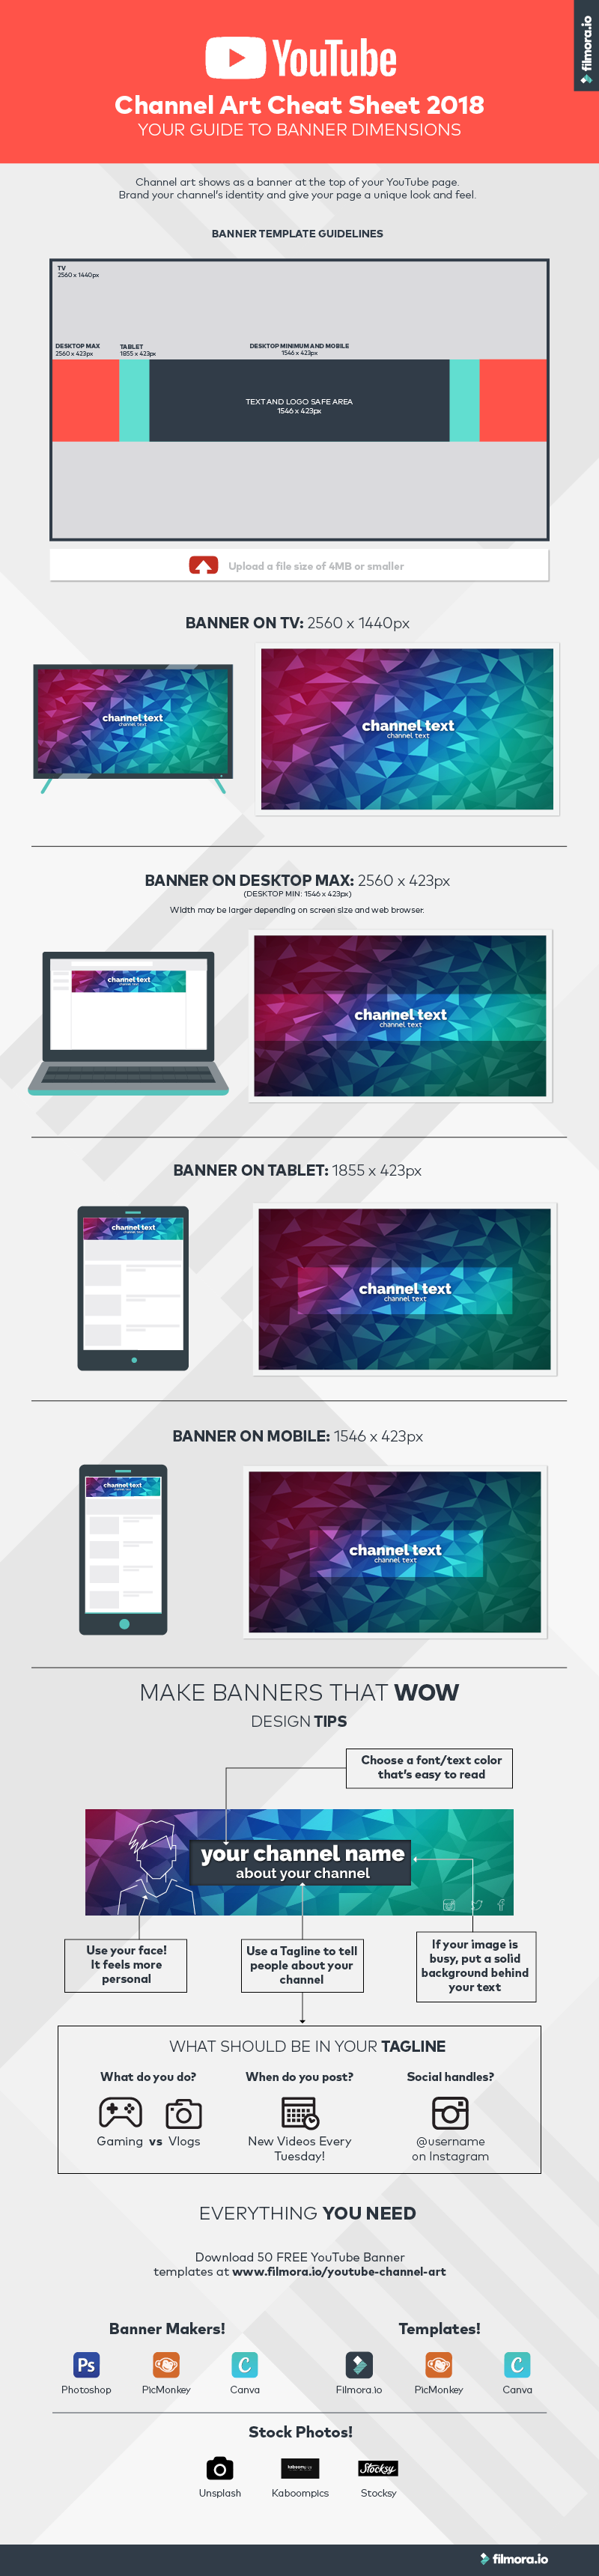 Youtube System Design : youtube, system, design, YouTube, Channel, Cheat, Sheet, [Infographic], Youtube, Social, Media, Infographic